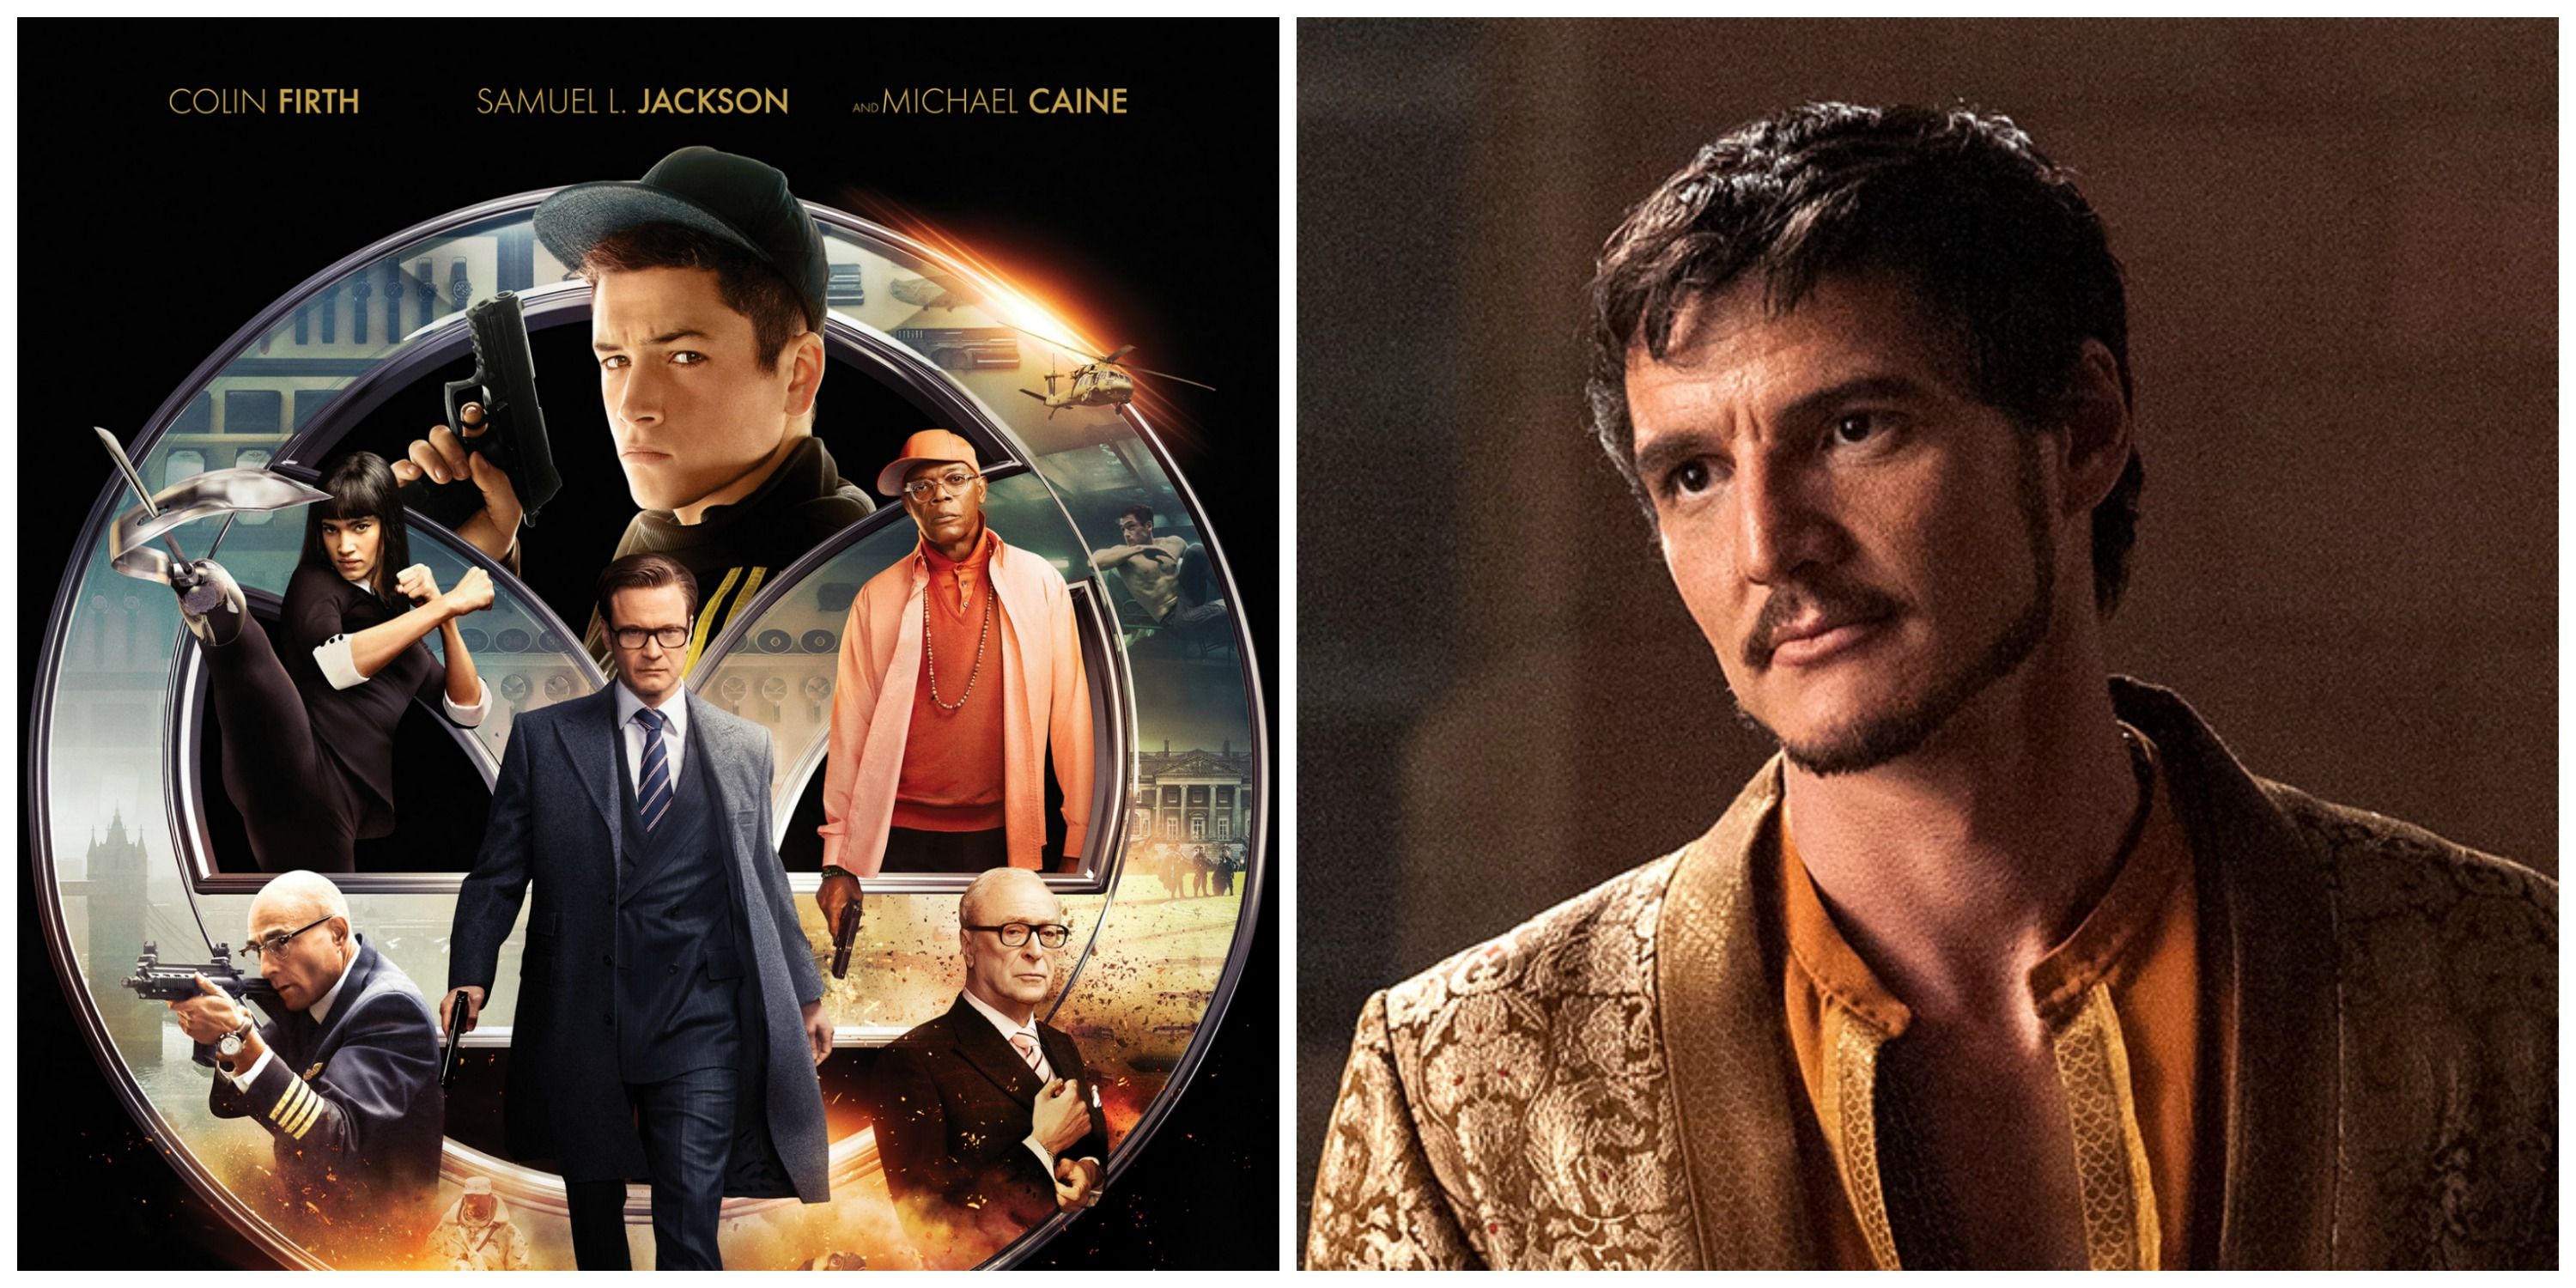 Pedro Pascal From 'Game Of Thrones' Cast In 'Kingsman: The